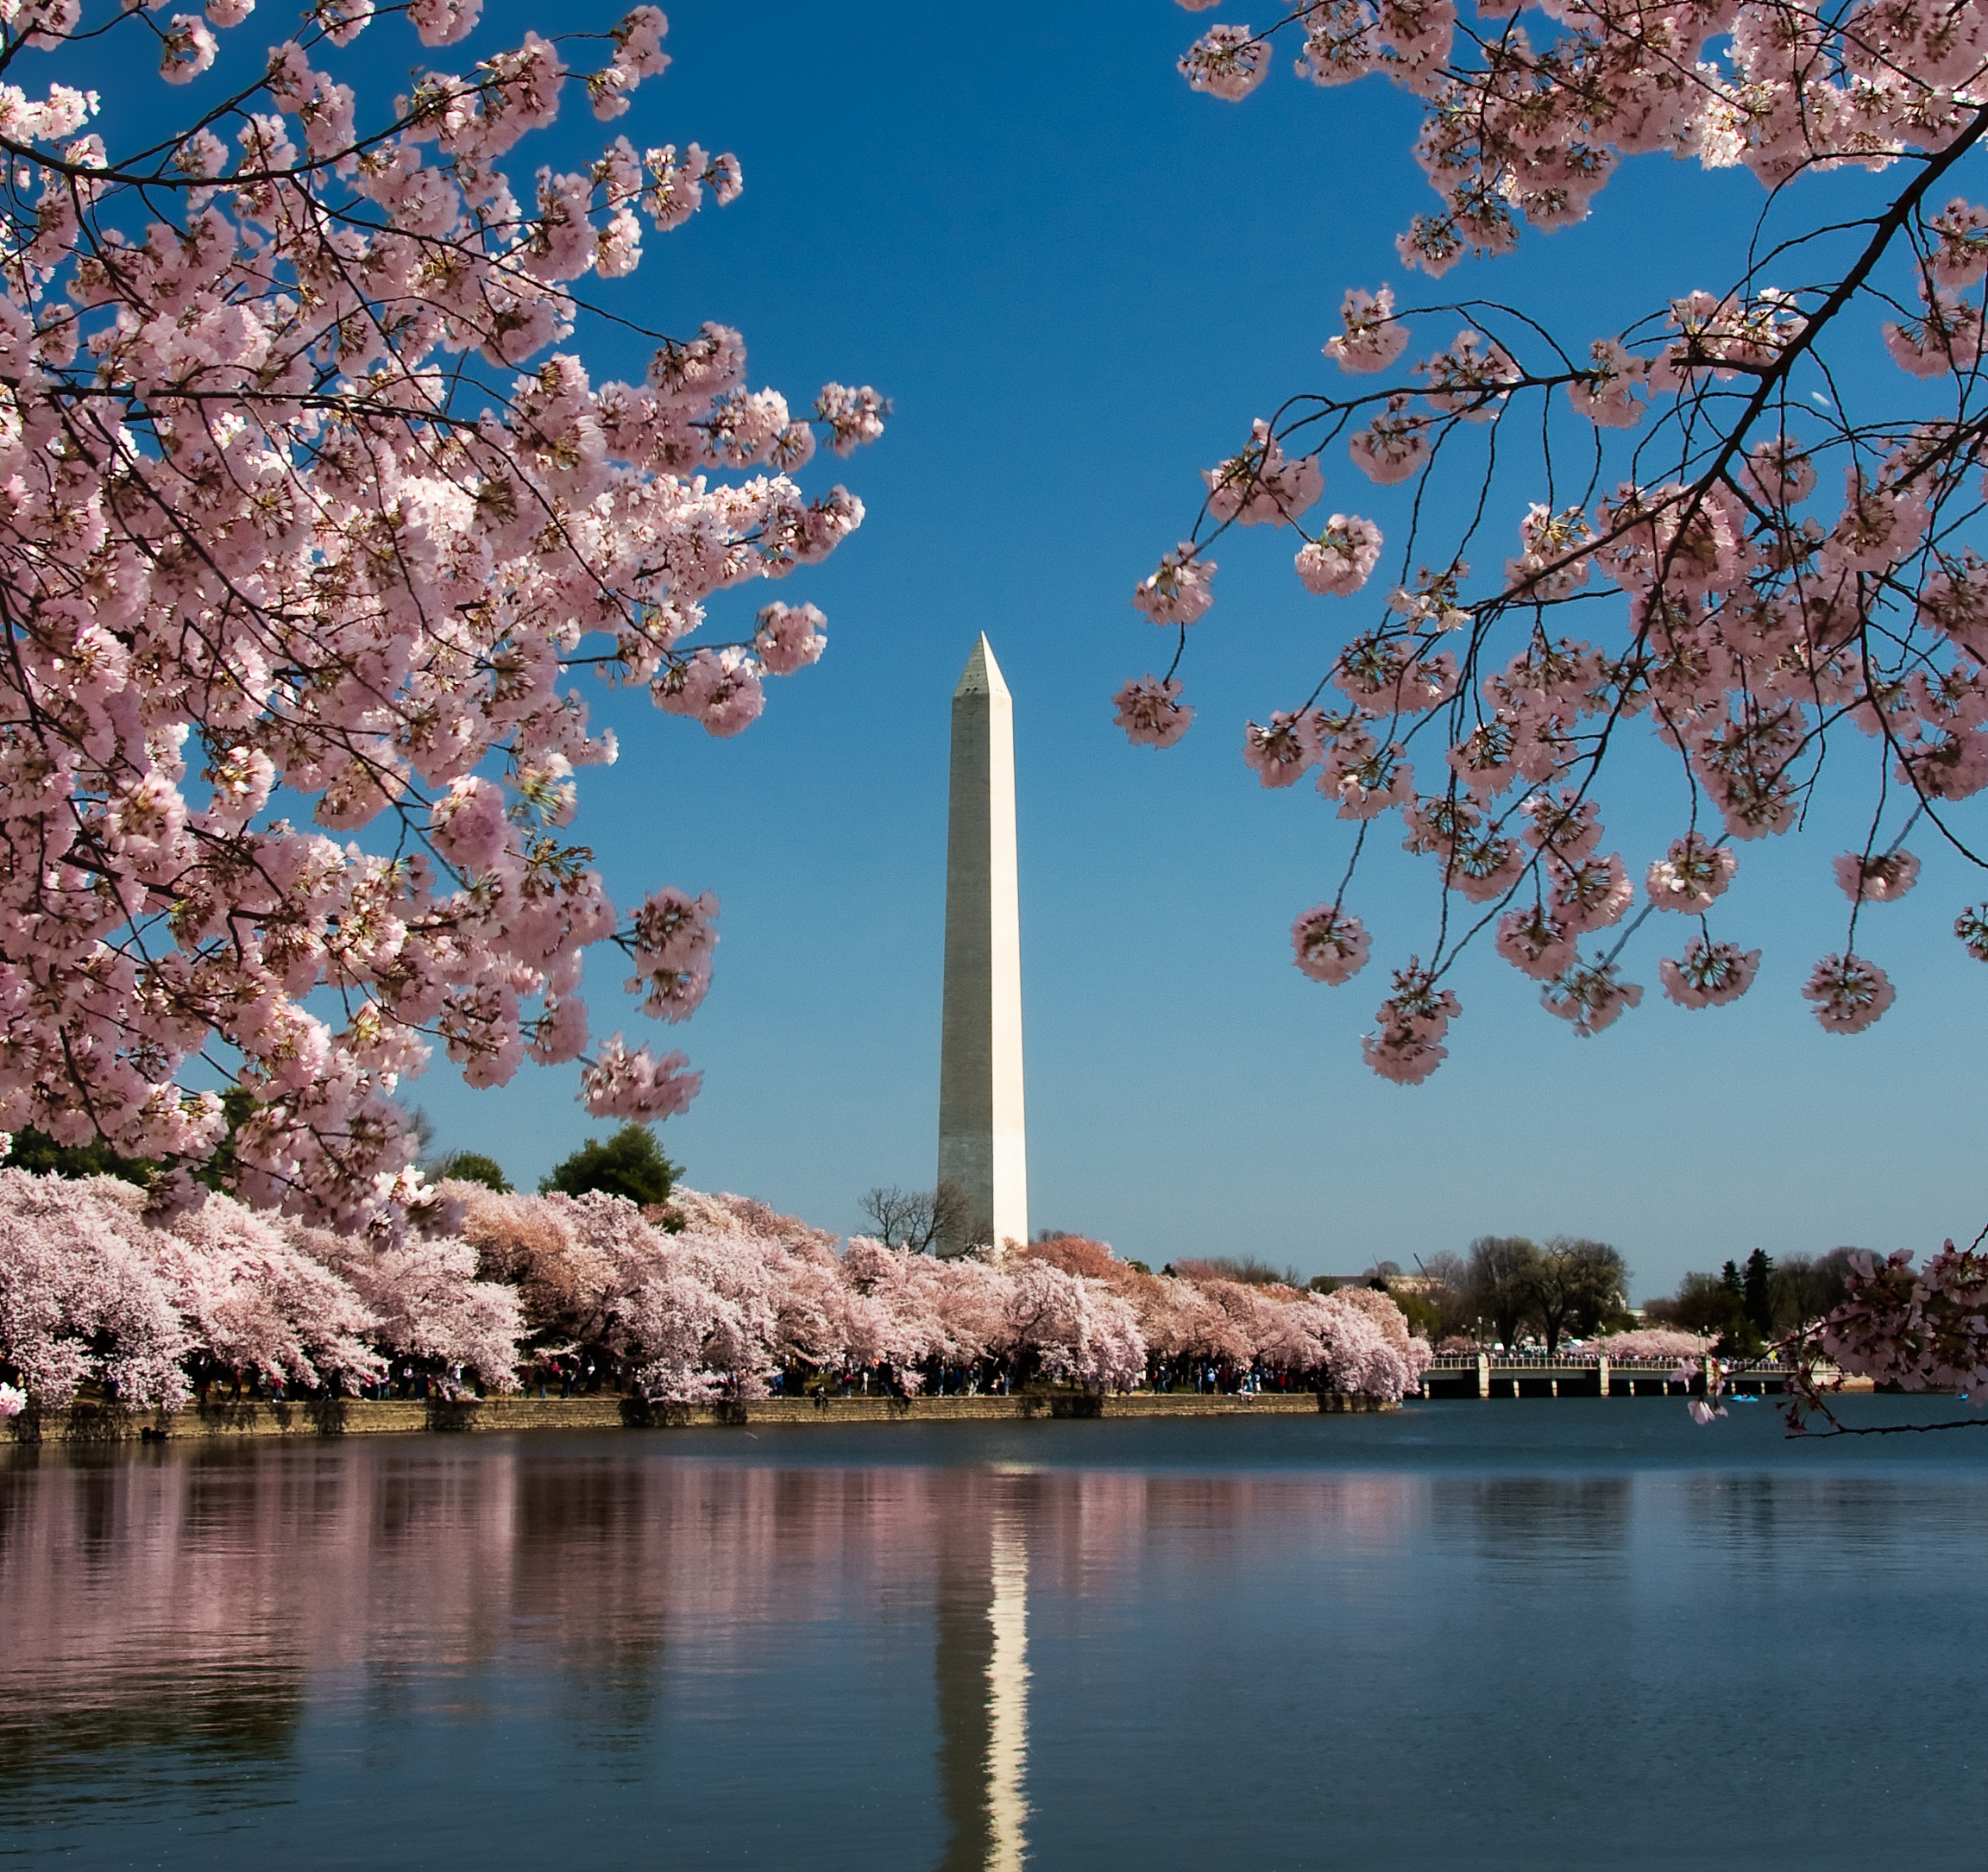 Cherry blosson season in Washington DC